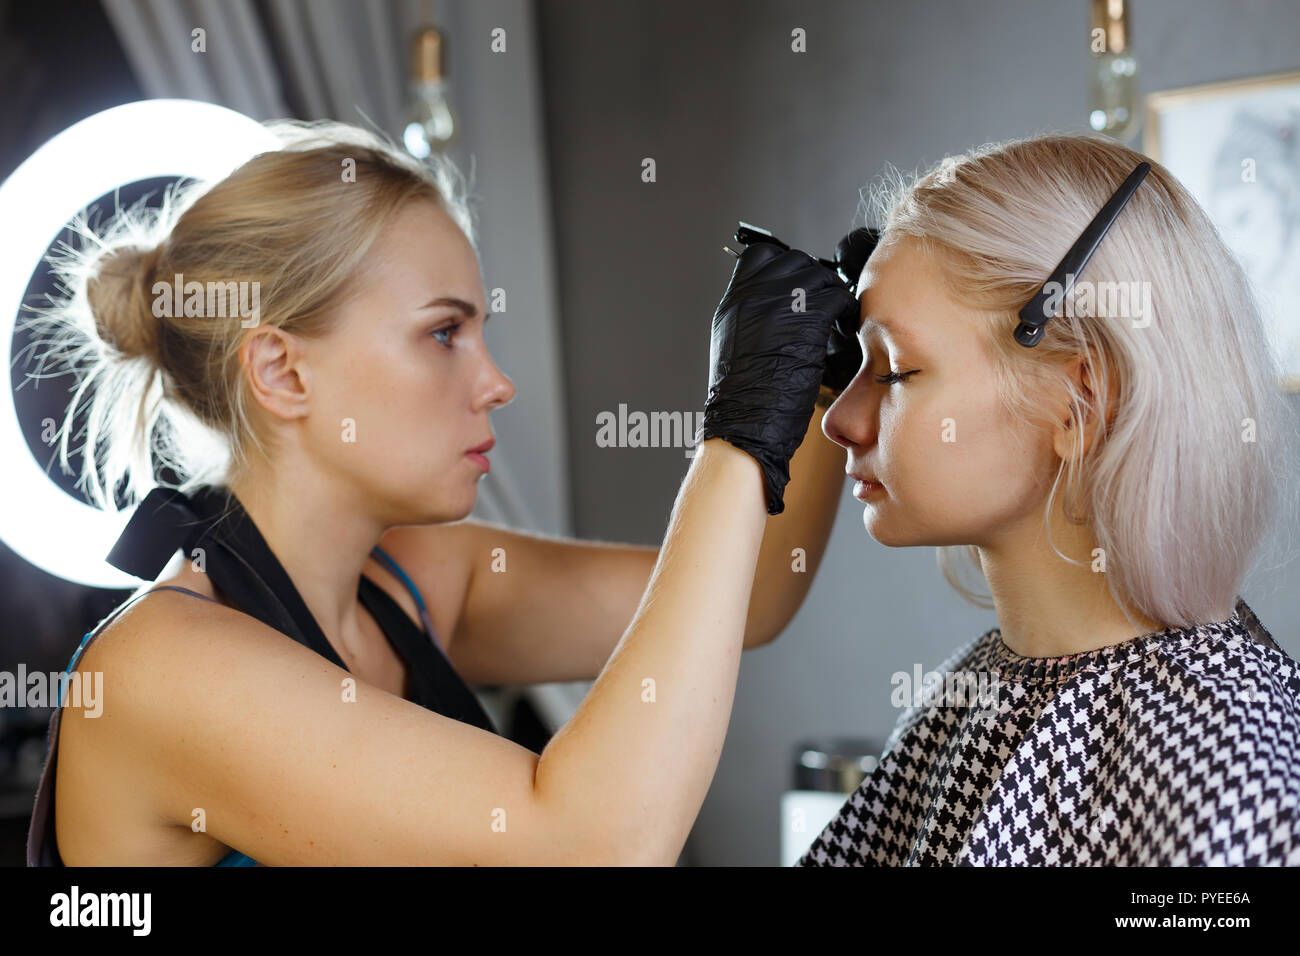 Beautiful young girl got correction of eyebrows in a beauty salon - Stock Image